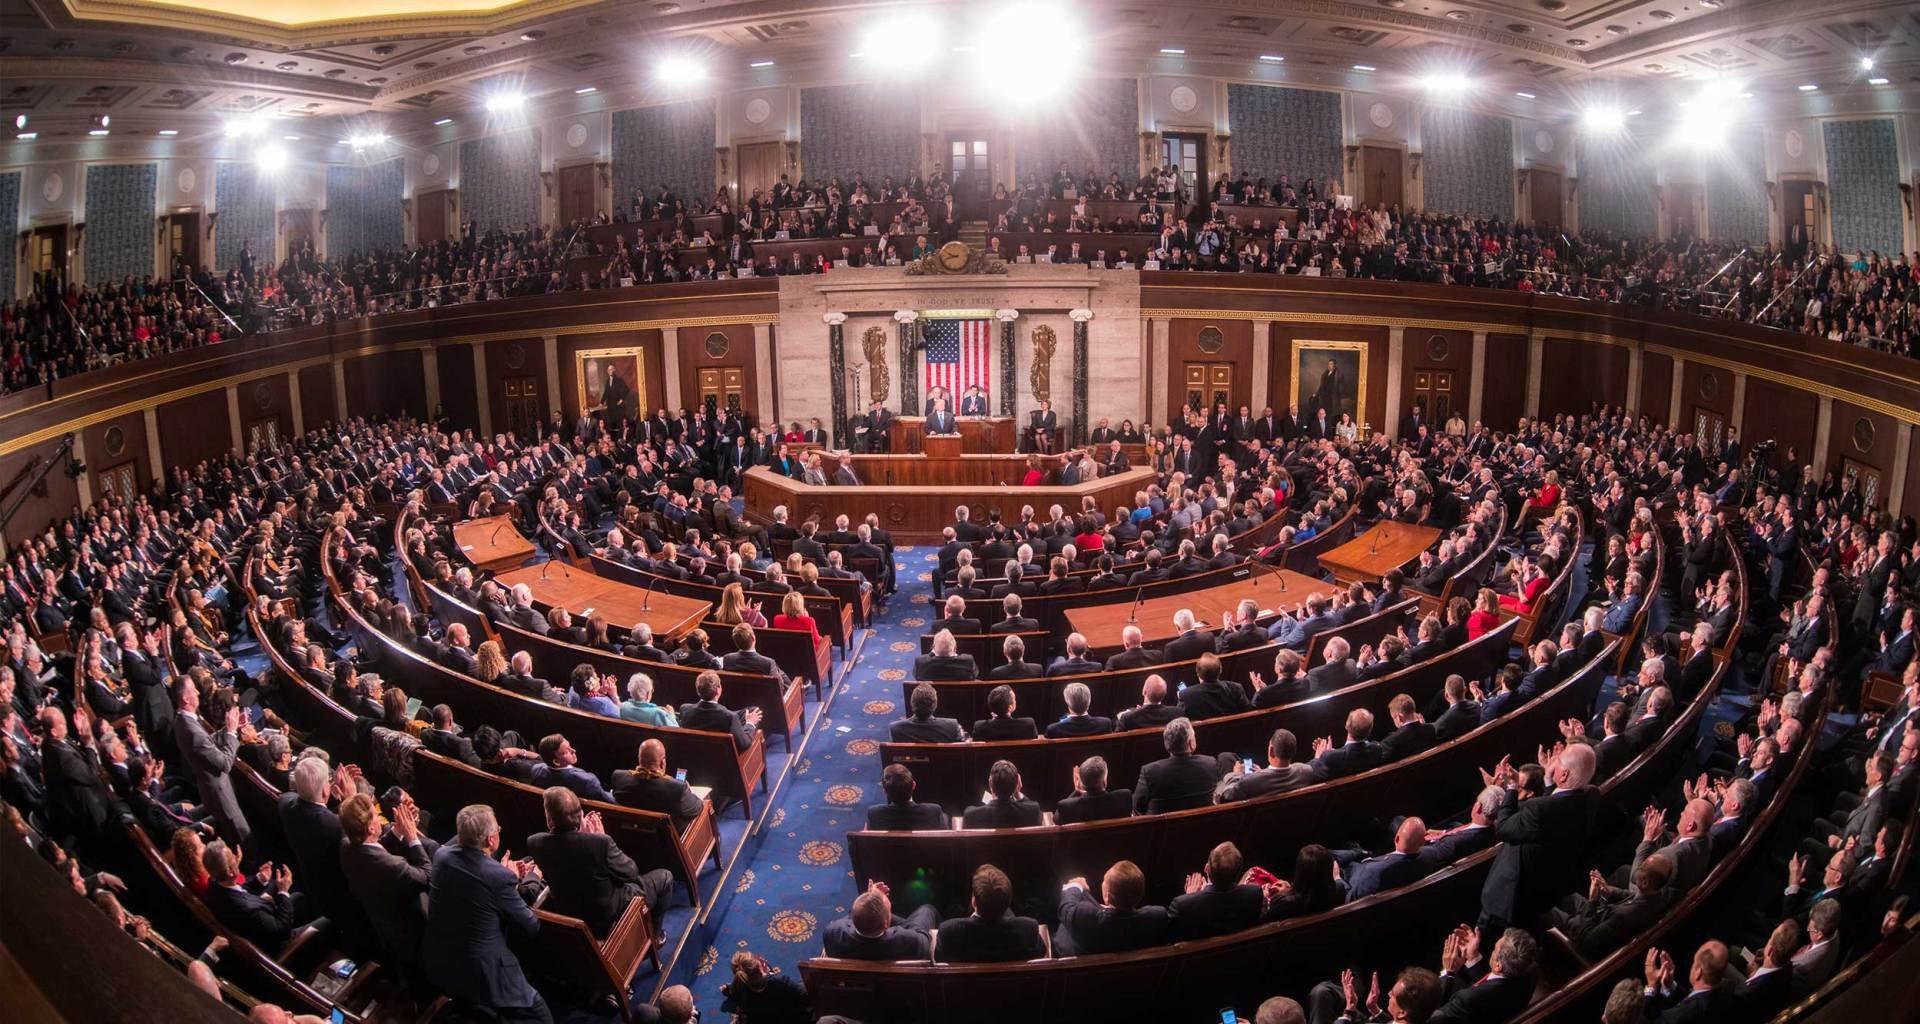 United States House of Representatives chamber during the 2018 State of the Union address.